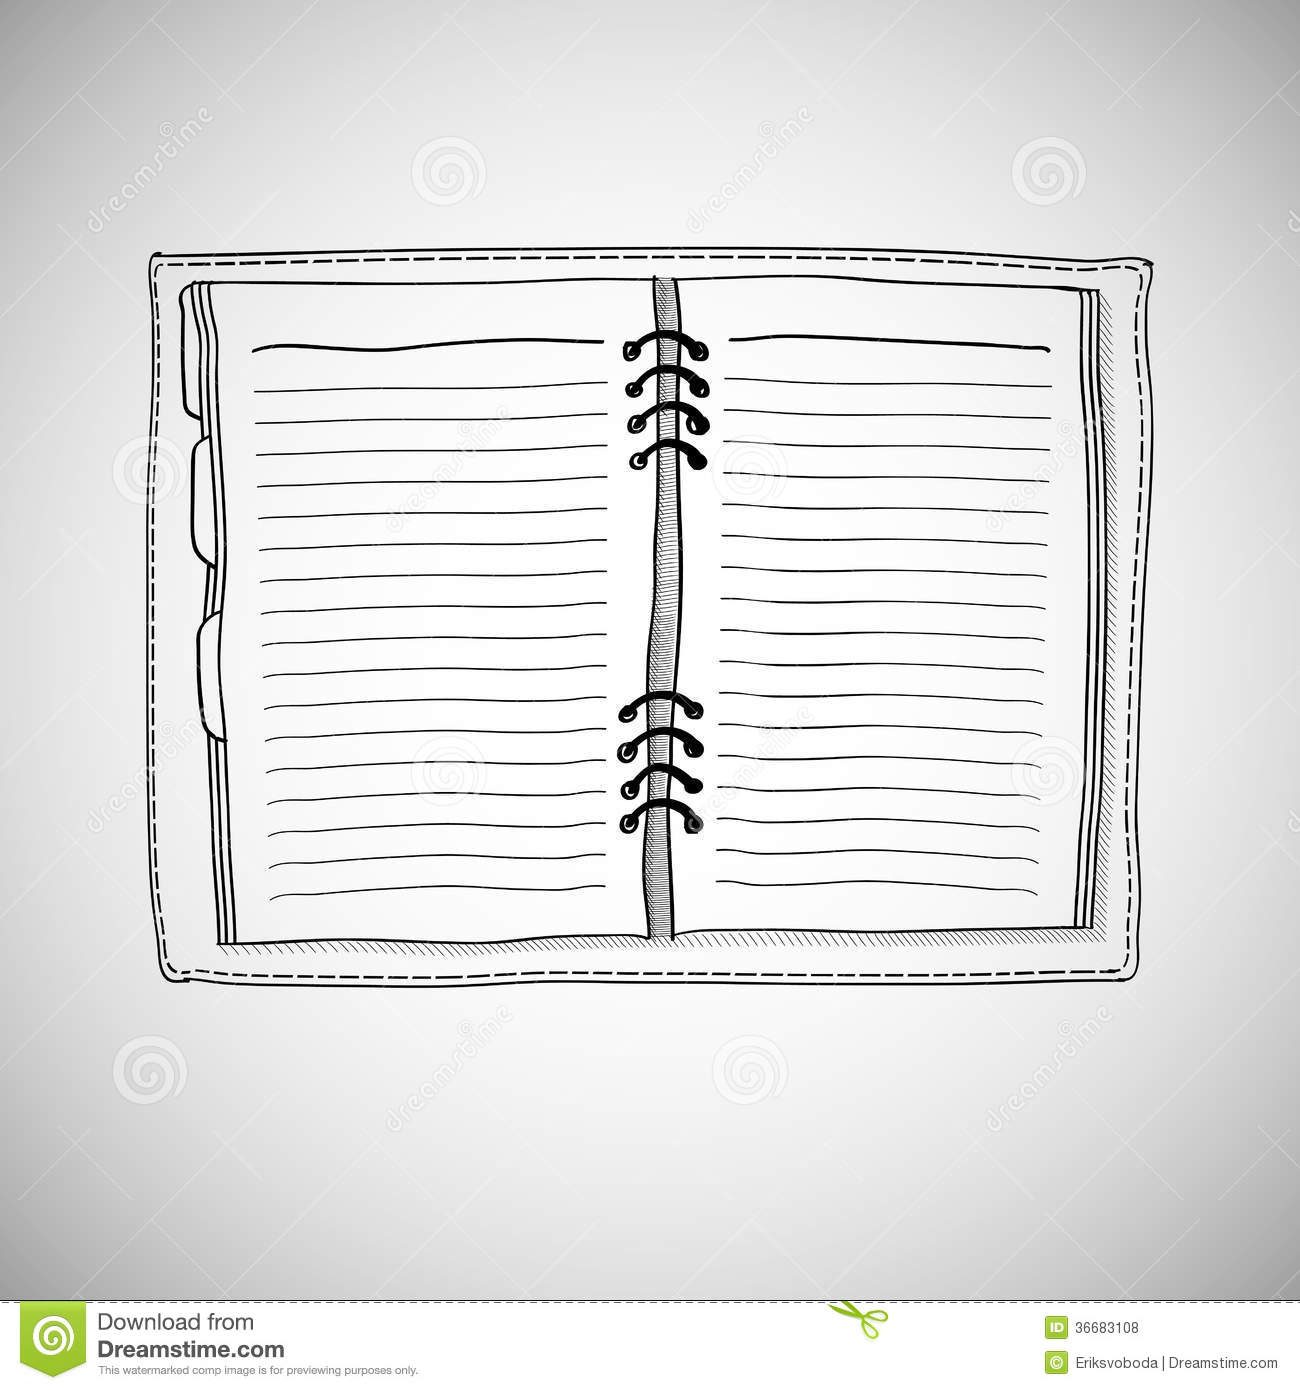 ... of notebook. Vector illustration with hand drawn notepad with page